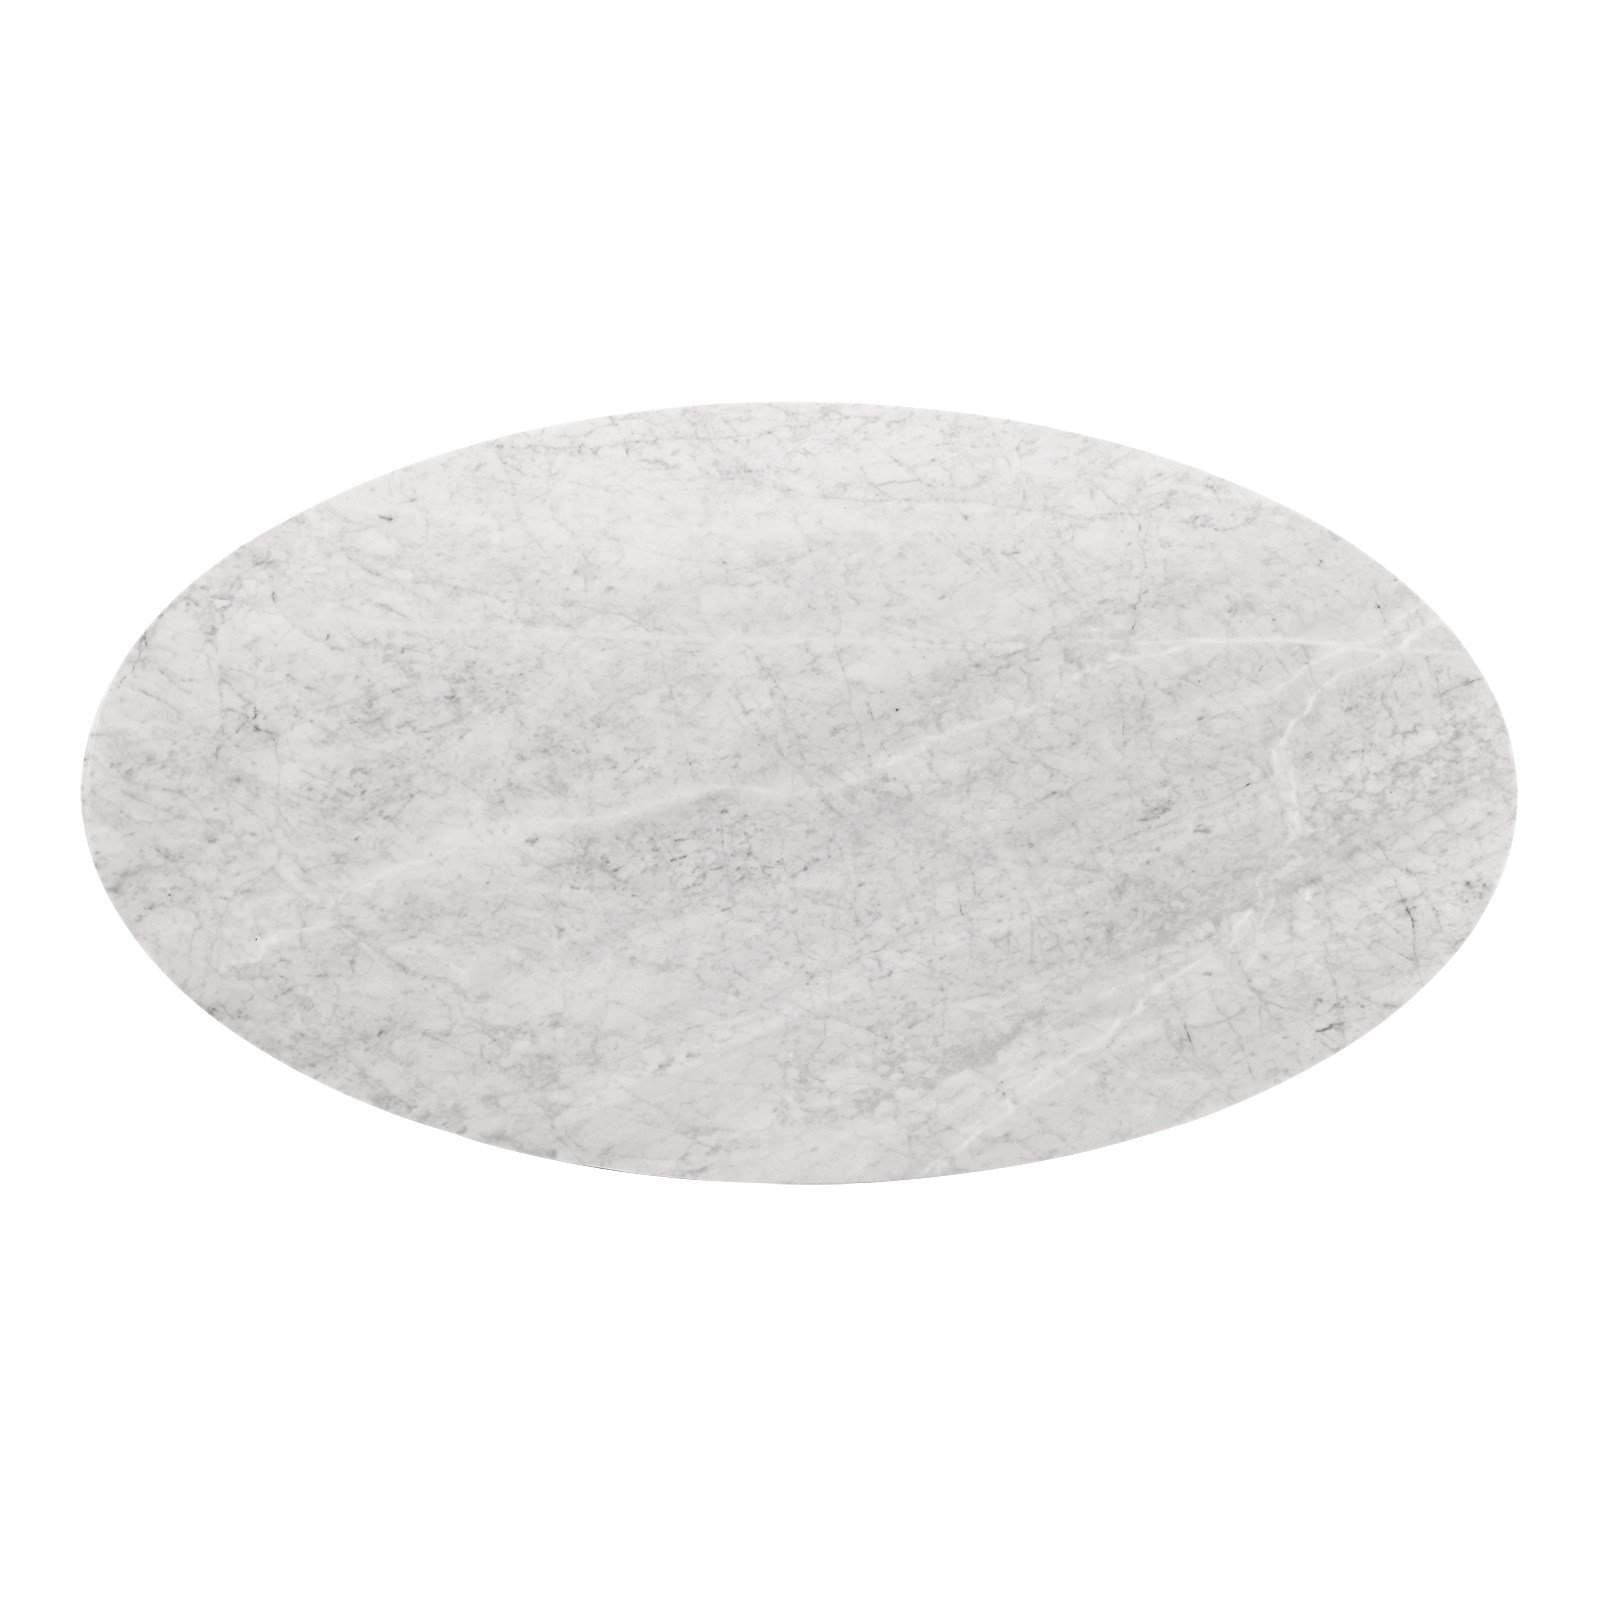 "Bungalow 5 - STOCKHOLM 95"" CARRERA OVAL DINING TABLE TOP (BASE SOLD SEPARATELY) in WHITE"